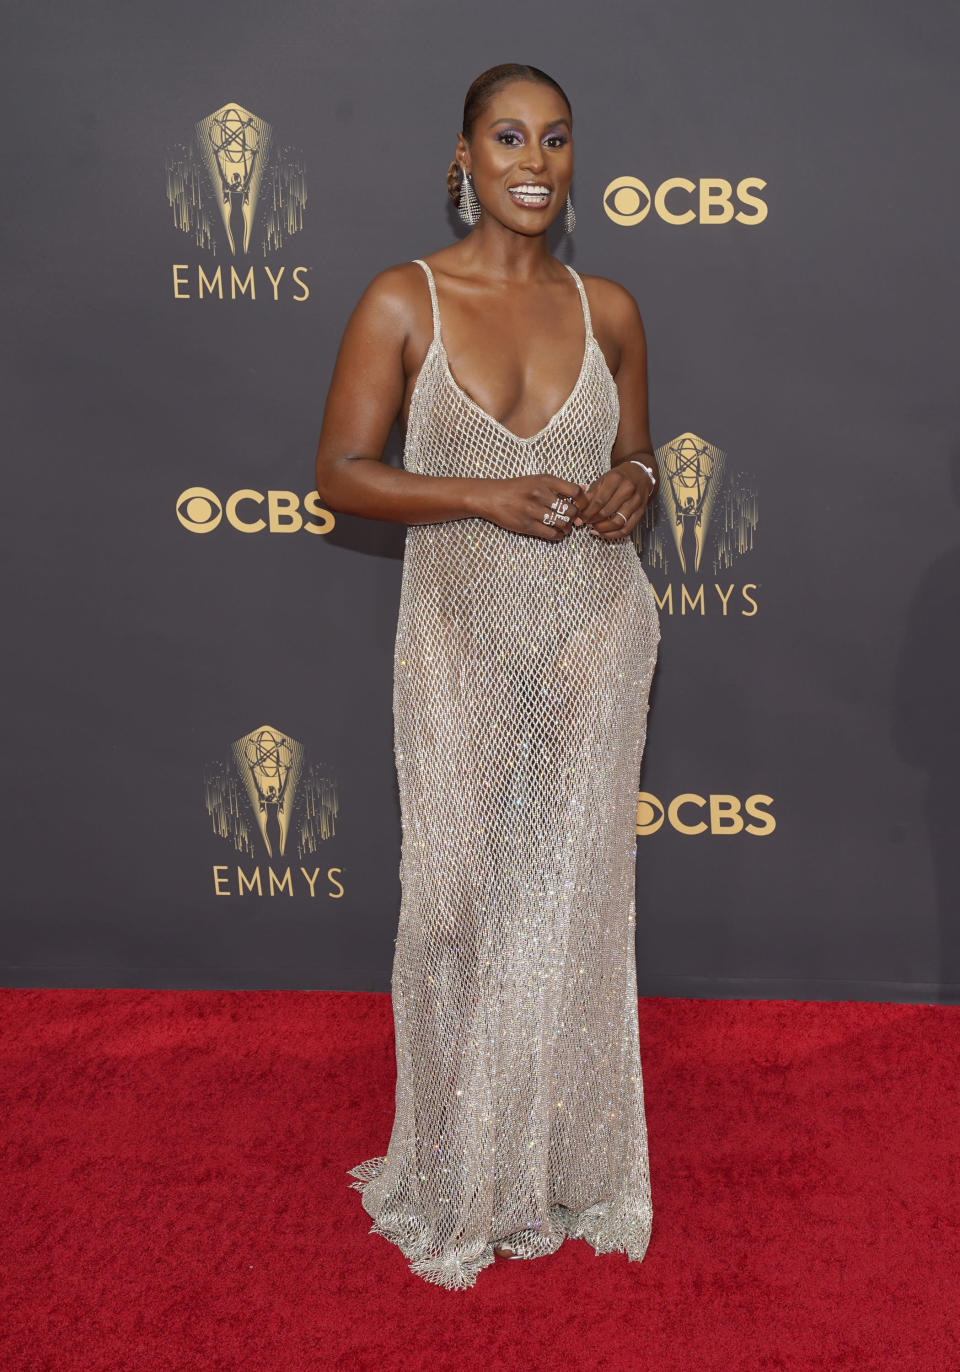 Issa Rae arrives at the 73rd Primetime Emmy Awards on Sunday, Sept. 19, 2021, at L.A. Live in Los Angeles. (AP Photo/Chris Pizzello)